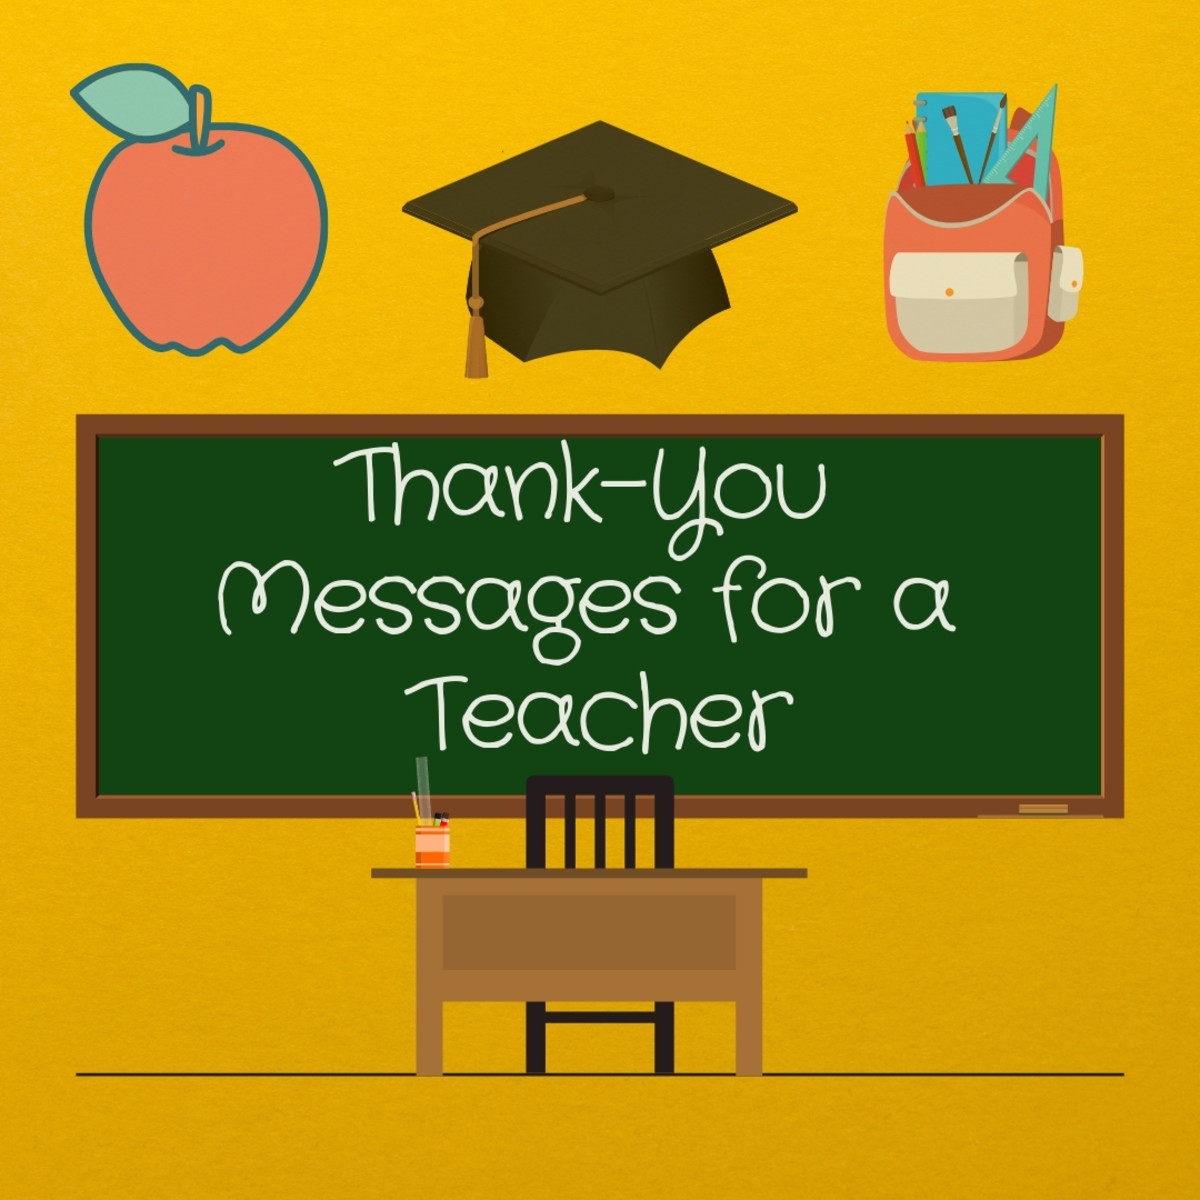 Your teachers have stood by your side no matter how silly or complicated your problems were. Spare a moment to thank them by leaving a warm thank-you note on their desks.